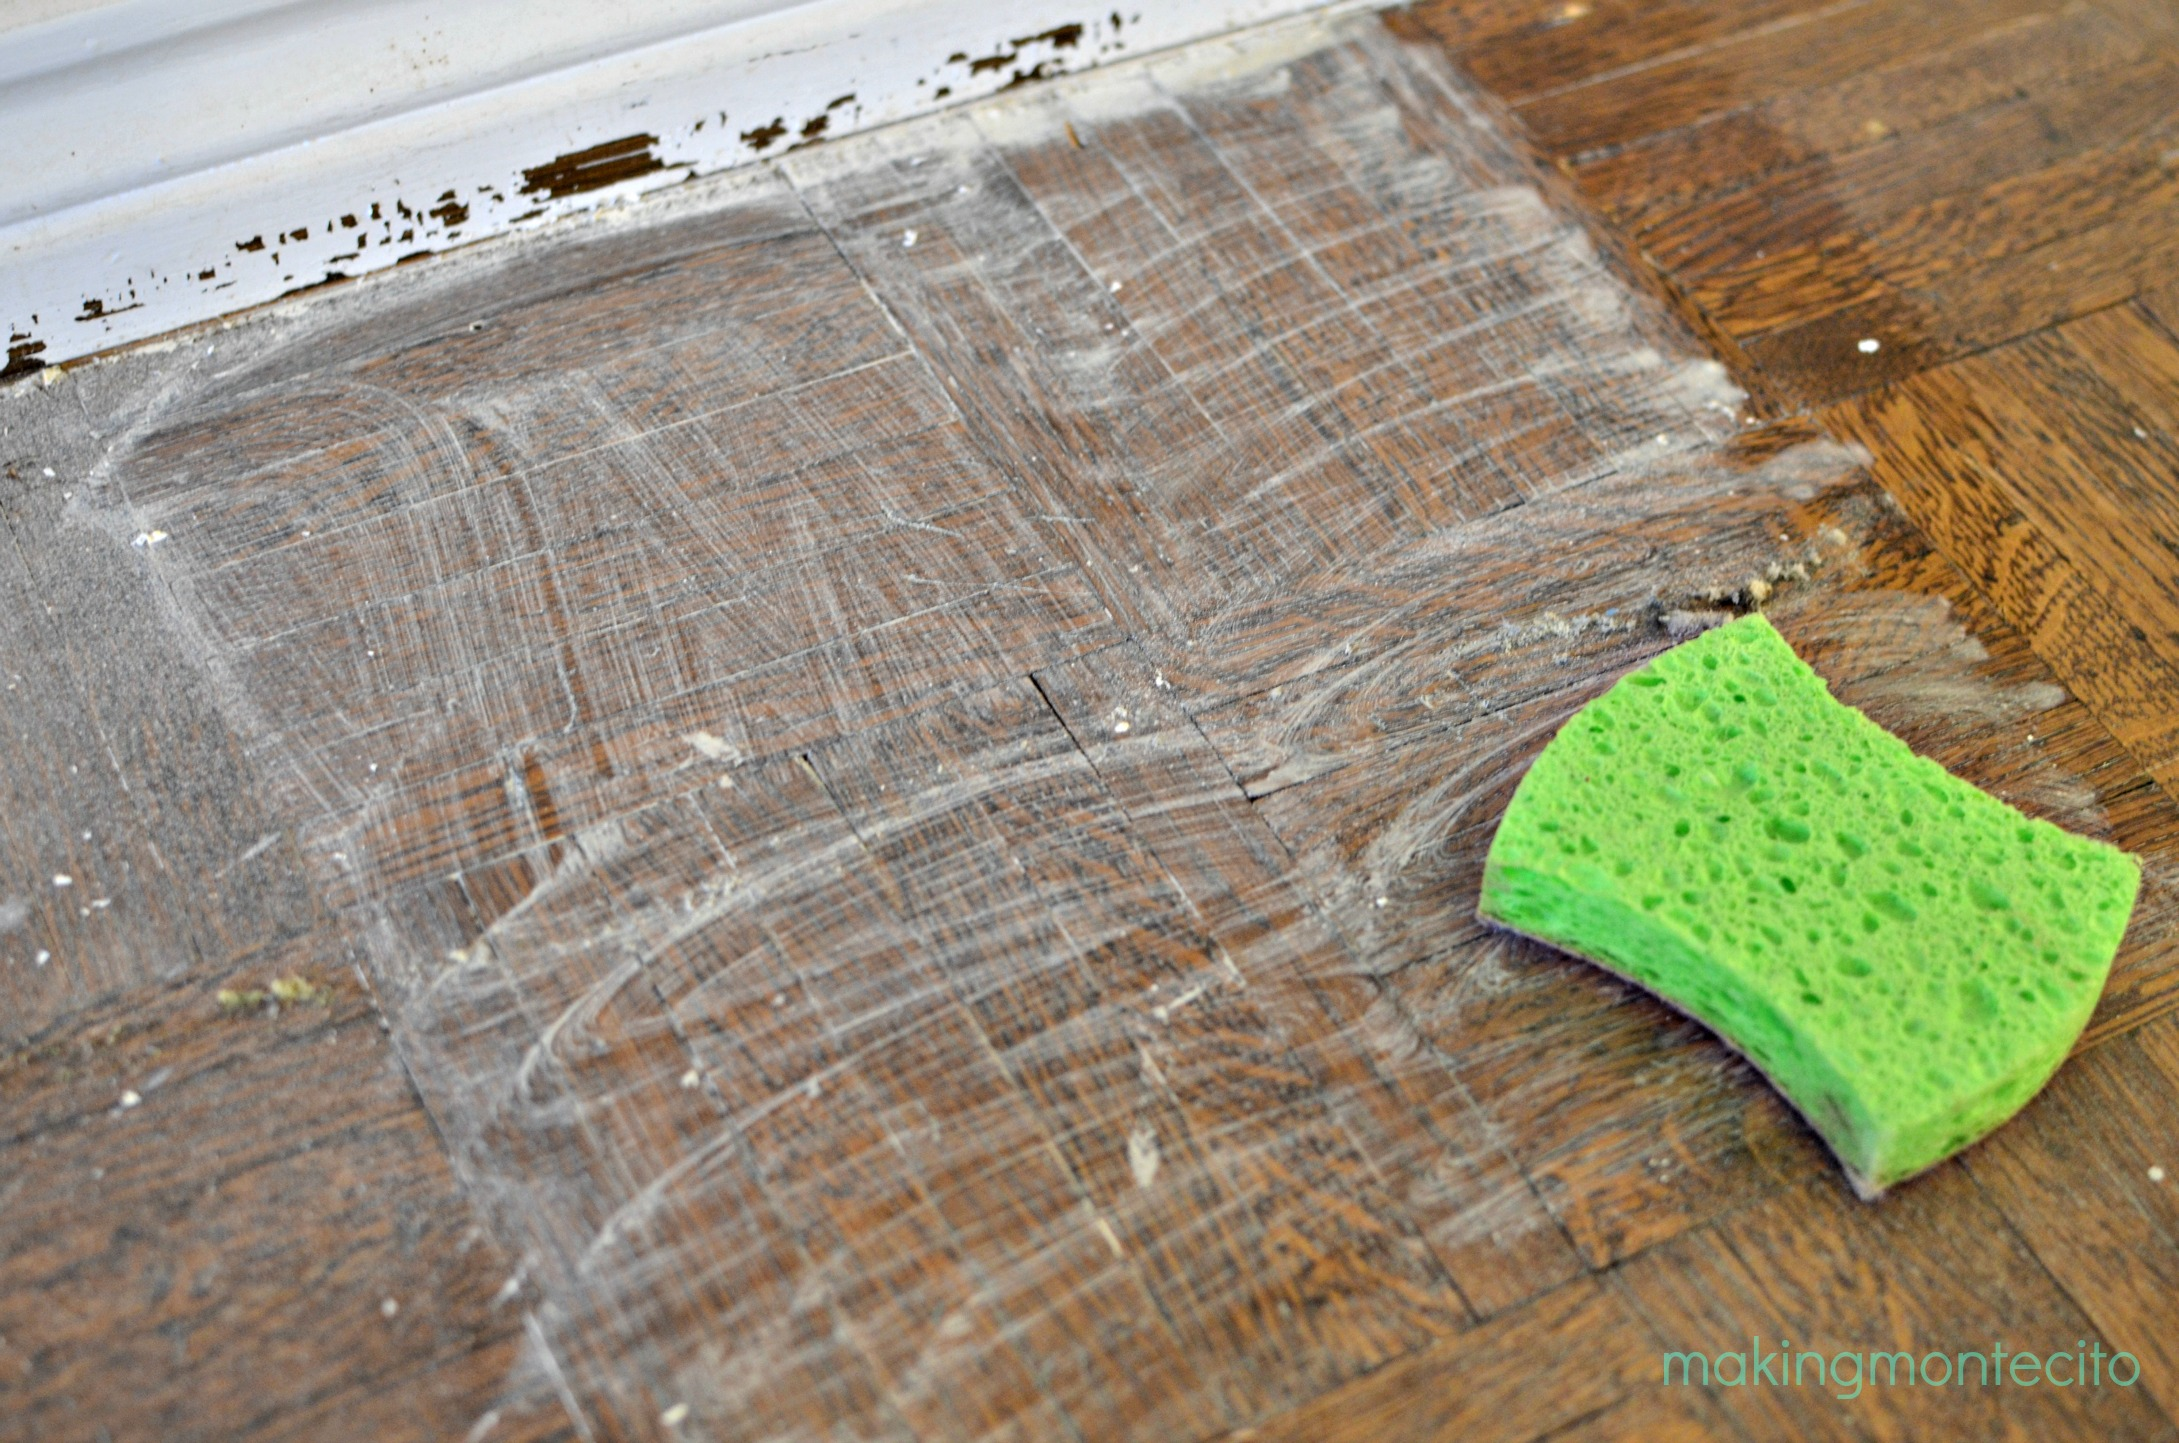 How to remove paint from hardwood floors - Making Montecito Paint Removal Process 1